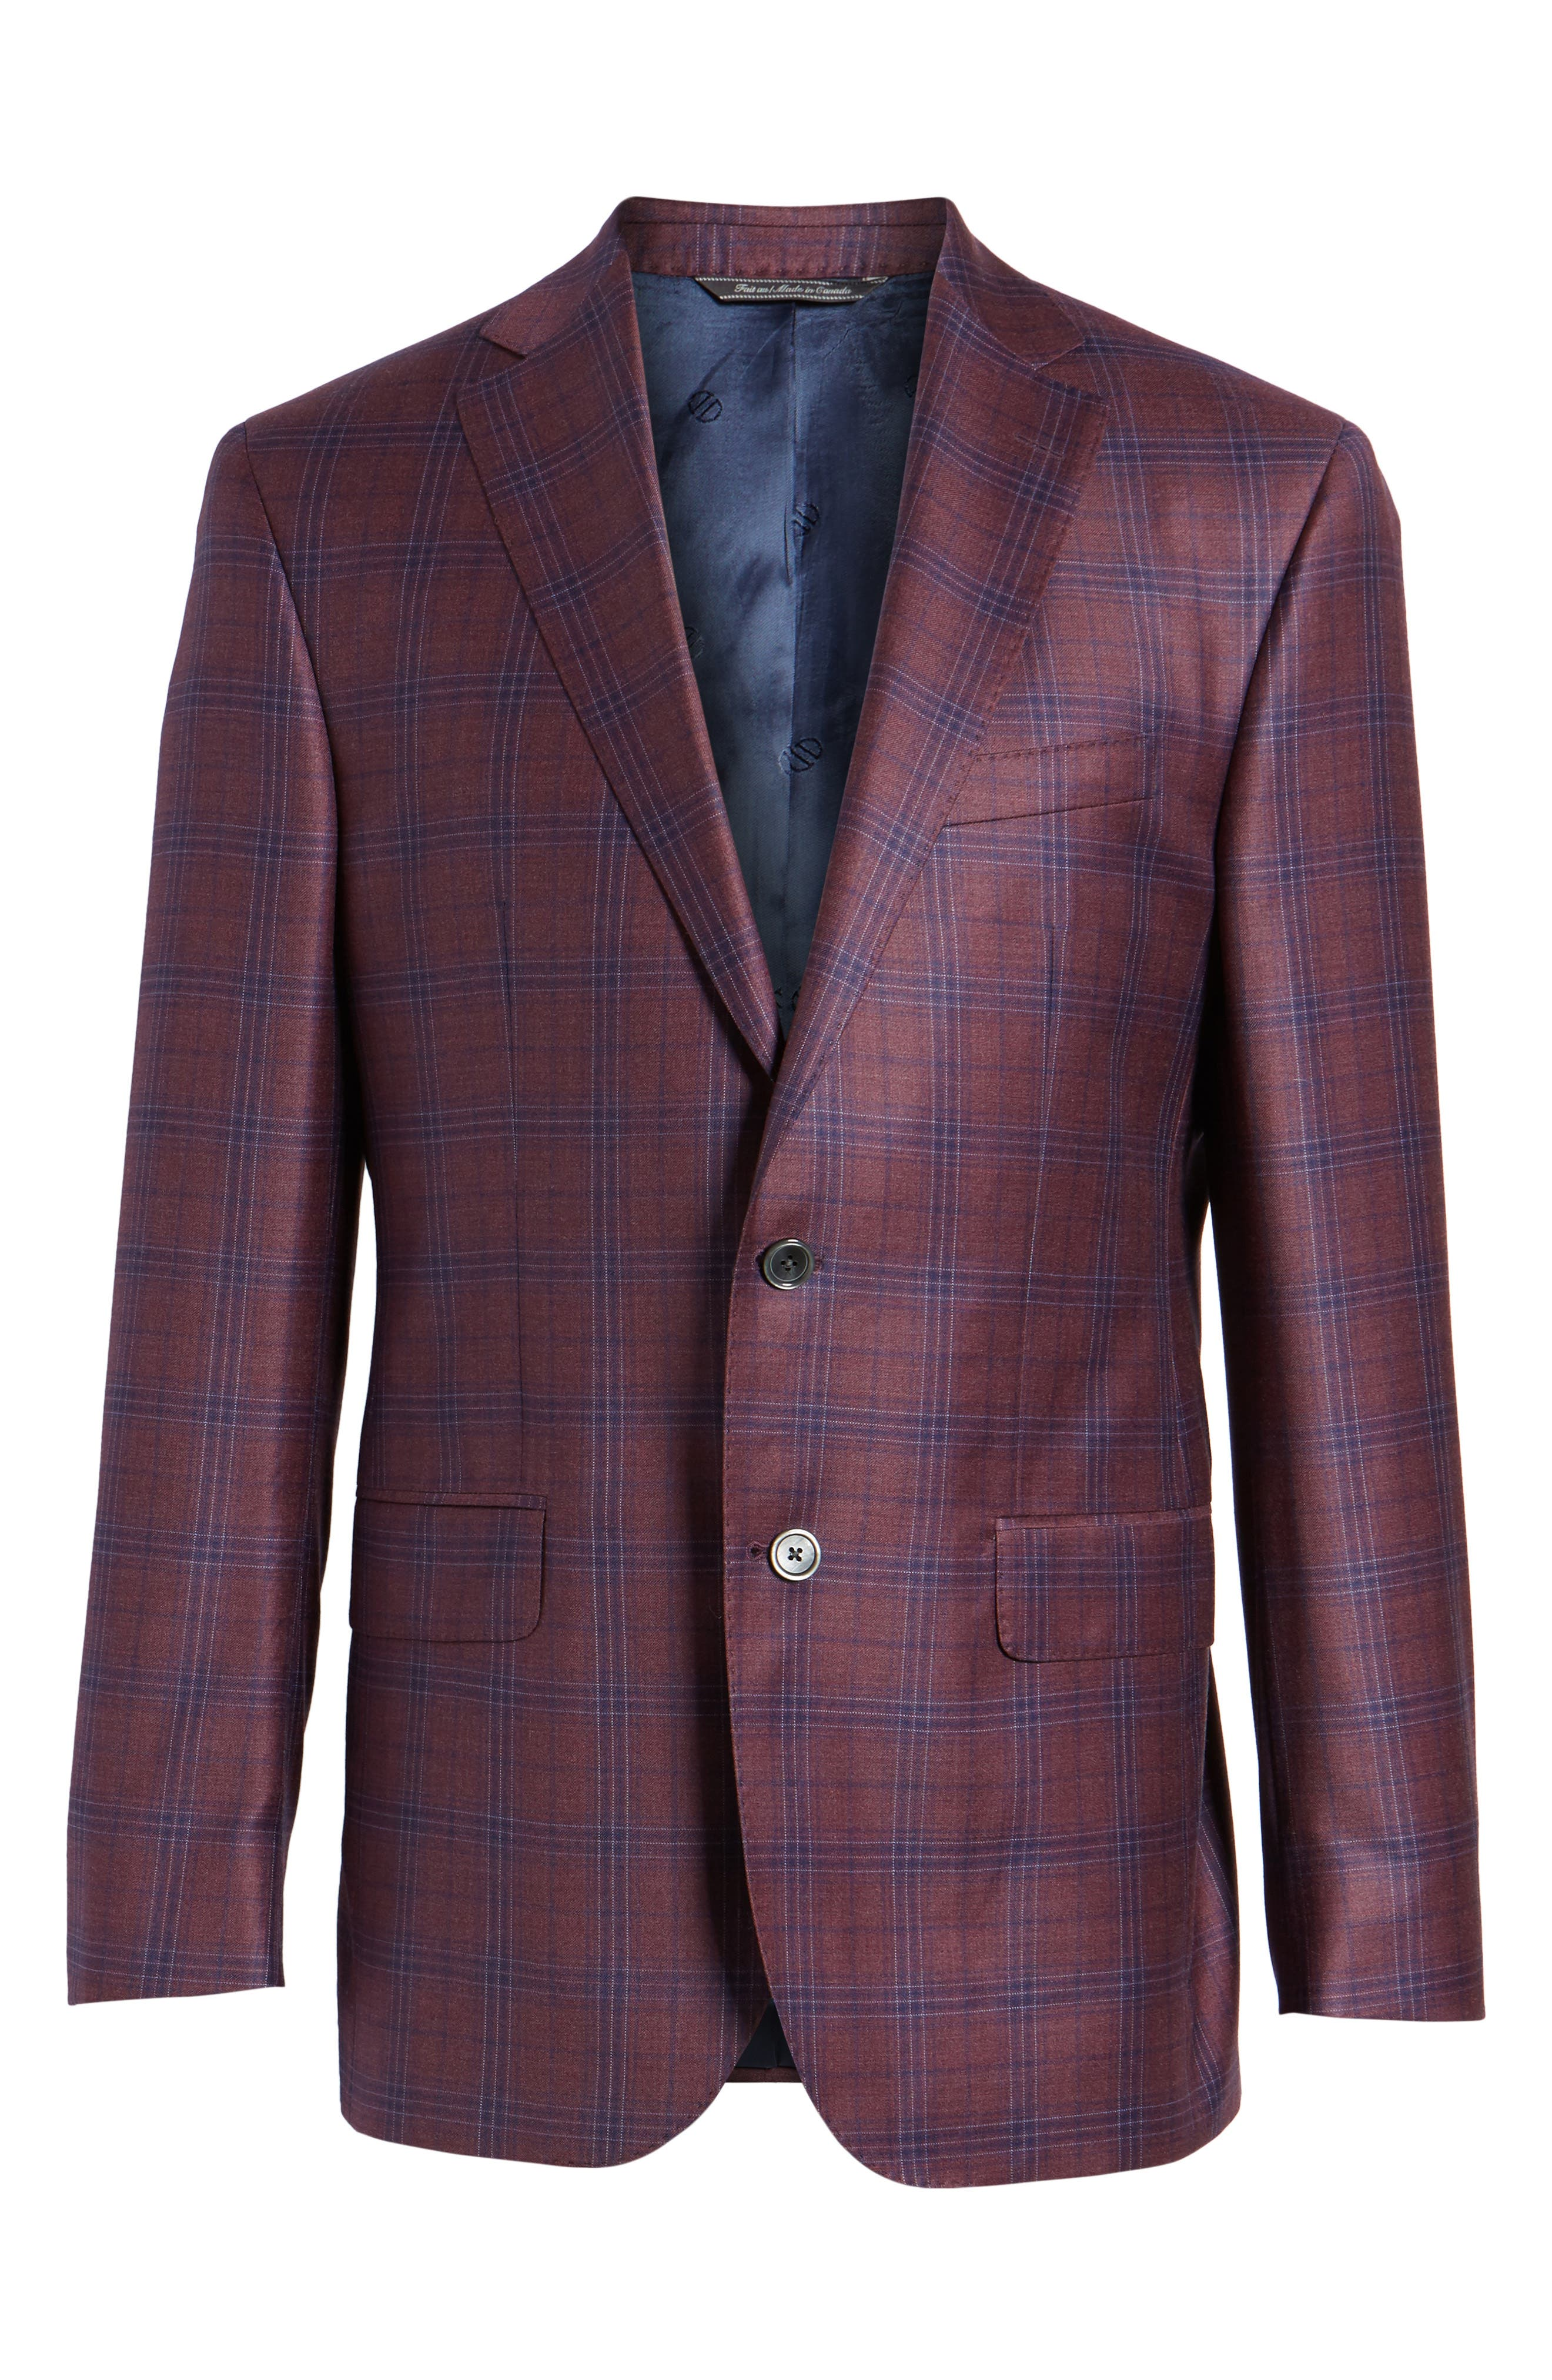 Connor Classic Fit Plaid Wool Sport Coat,                             Alternate thumbnail 5, color,                             930